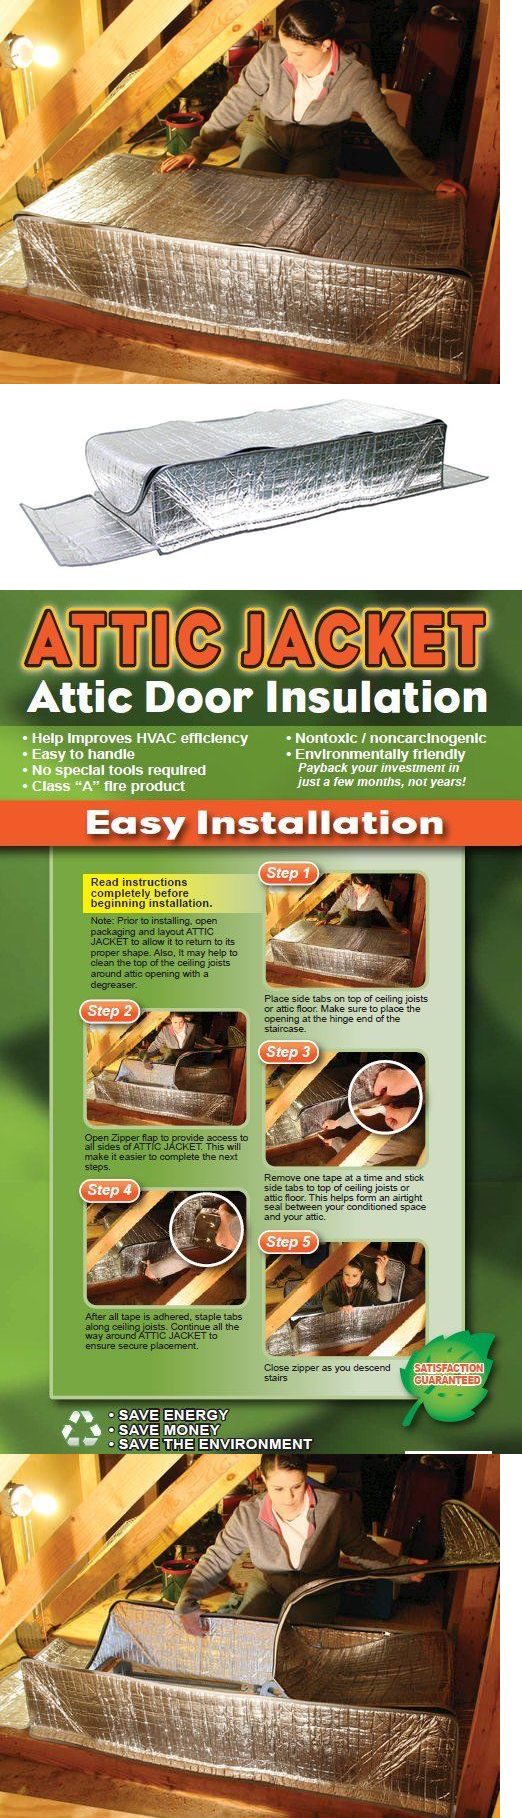 Other Home Heating and Cooling 20598 New Attic Jacket